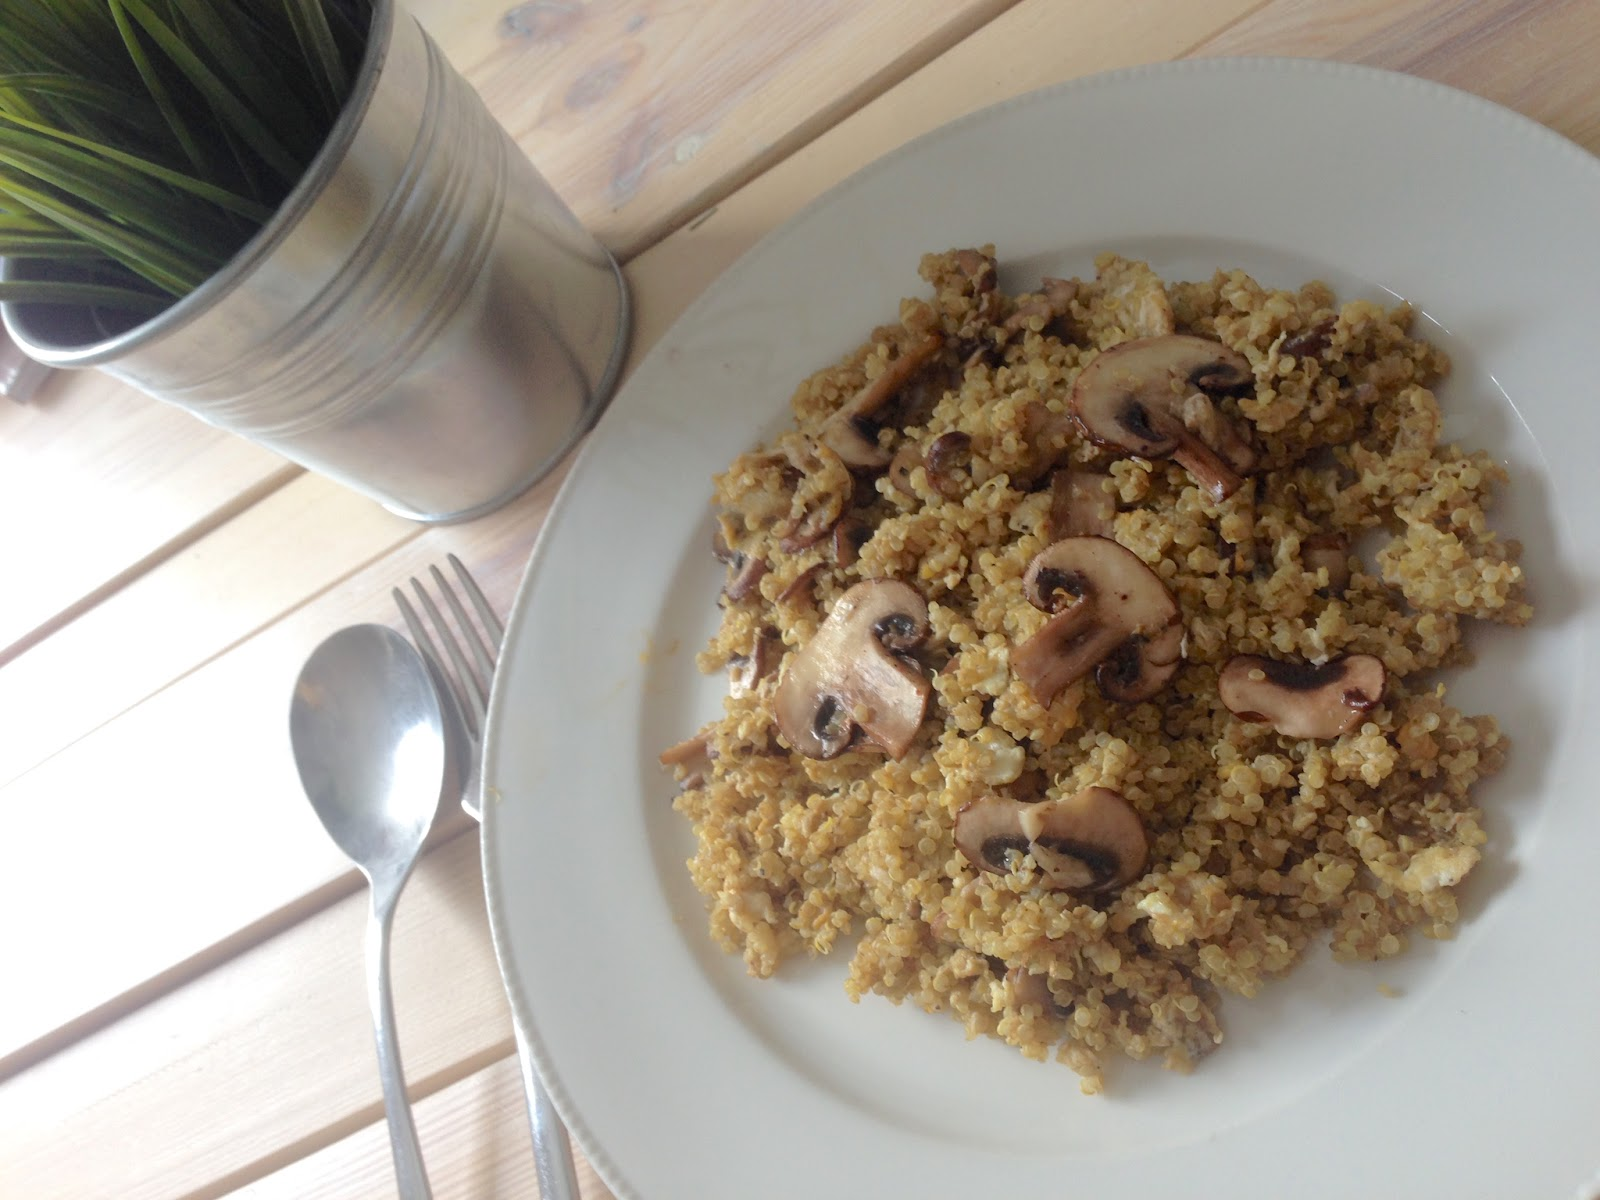 TheBlondeLion food Quinoa Mushroom Egg Garlic Superfood Protein http://theblondelion.blogspot.com/2015/03/food-mushroom-egg-quinoa-proteins.html